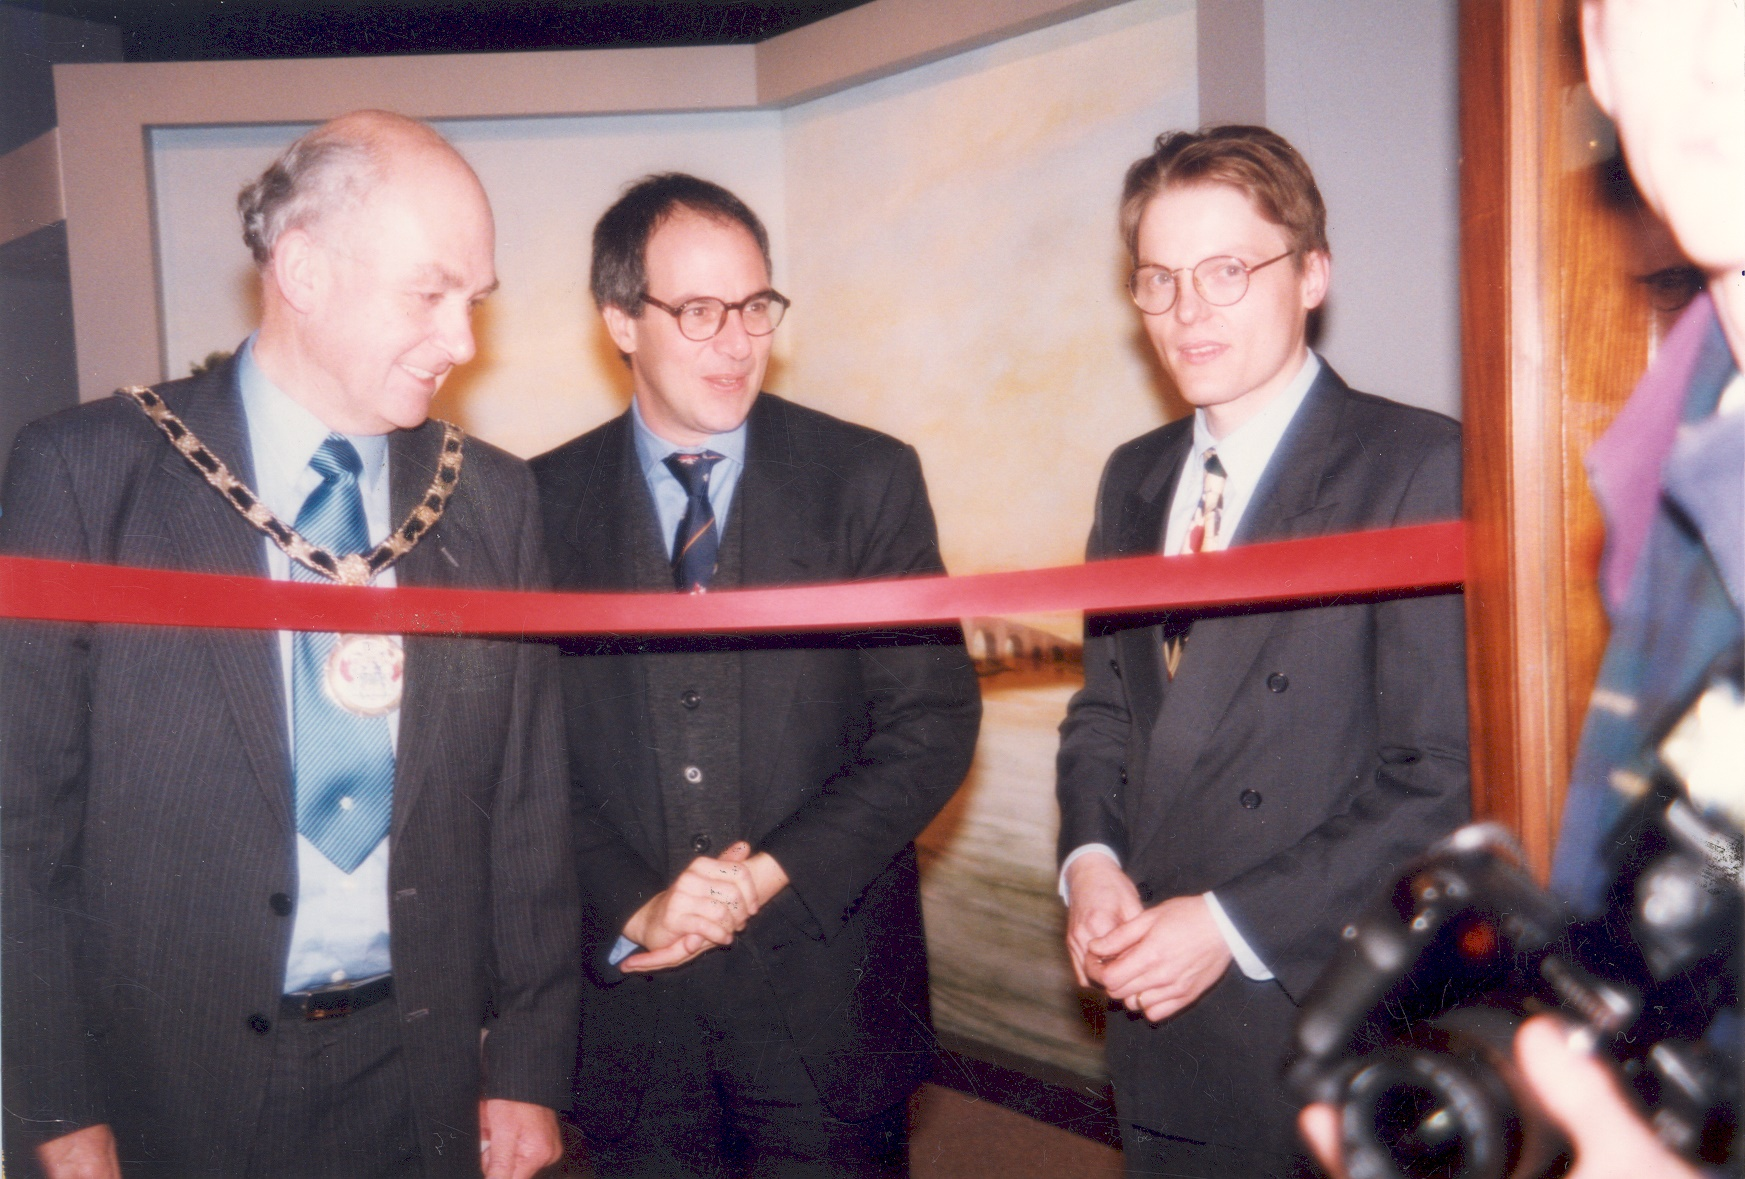 The Mayor of Elmbridge, Loyd Grossman and Neil White, Museum Manager, at the opening of the refurbished Elmbridge Museum on 10th December 1996, with the red ribbon across the Museum entrance, and press photographers in the vestibule.